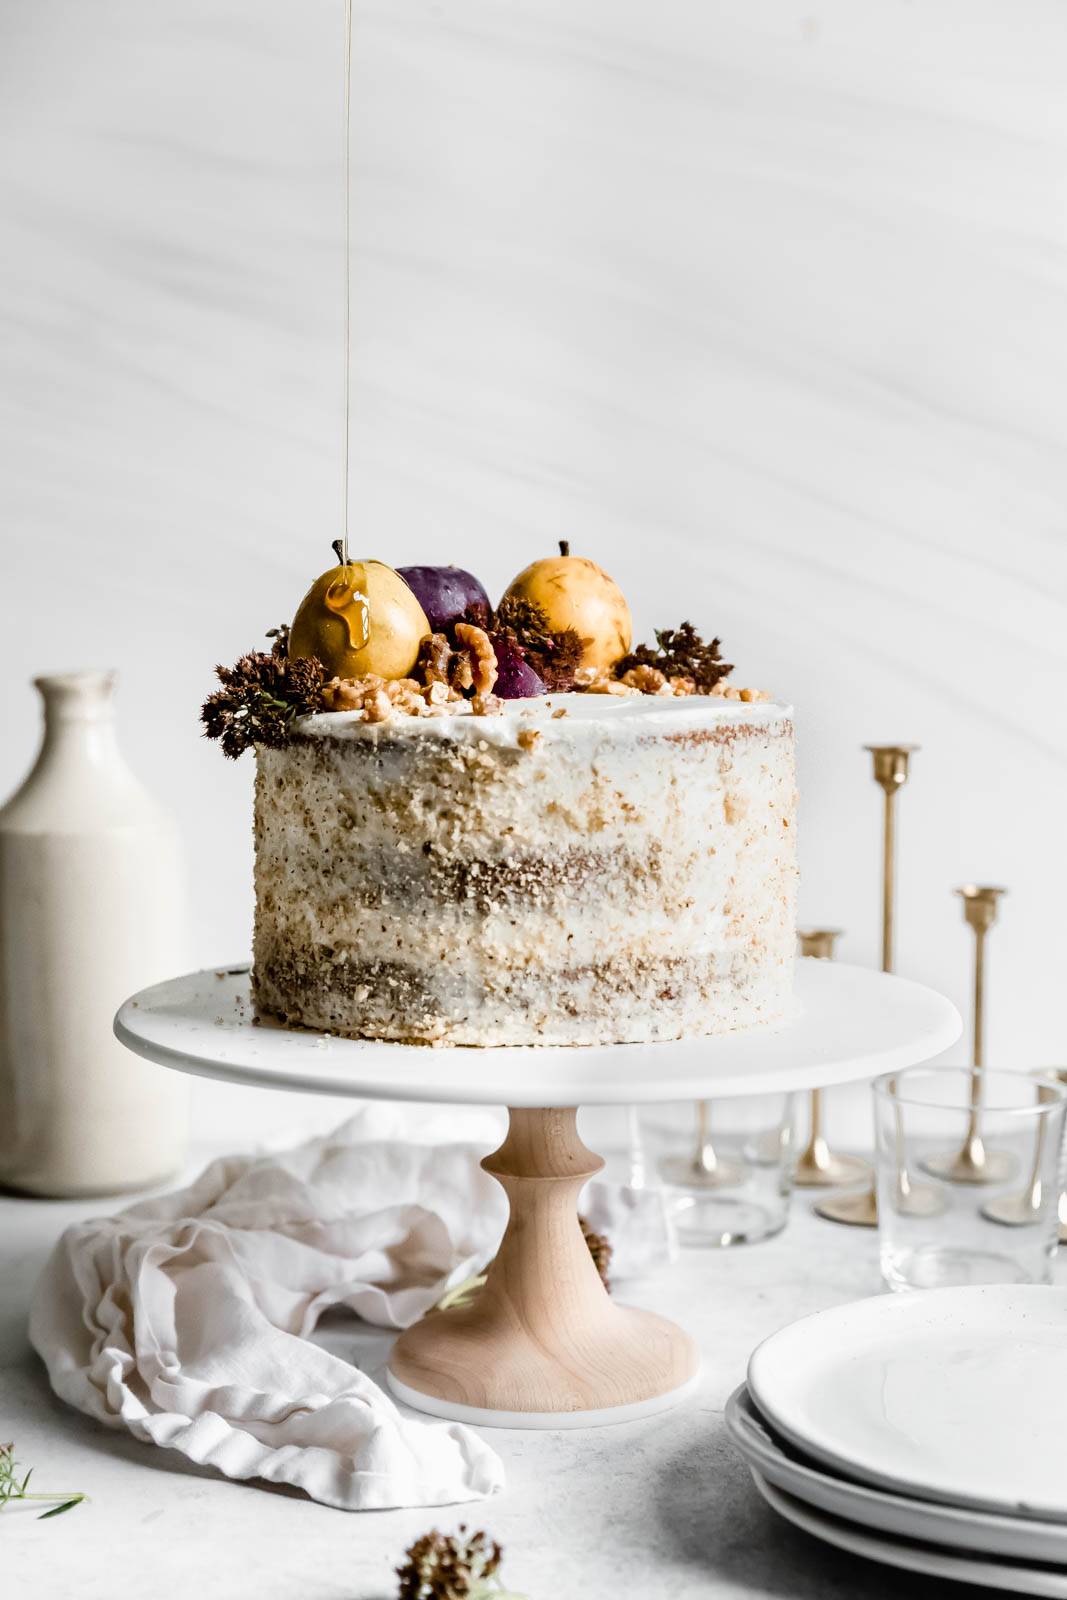 Maple Walnut Cake with Maple Frosting on a cake stand